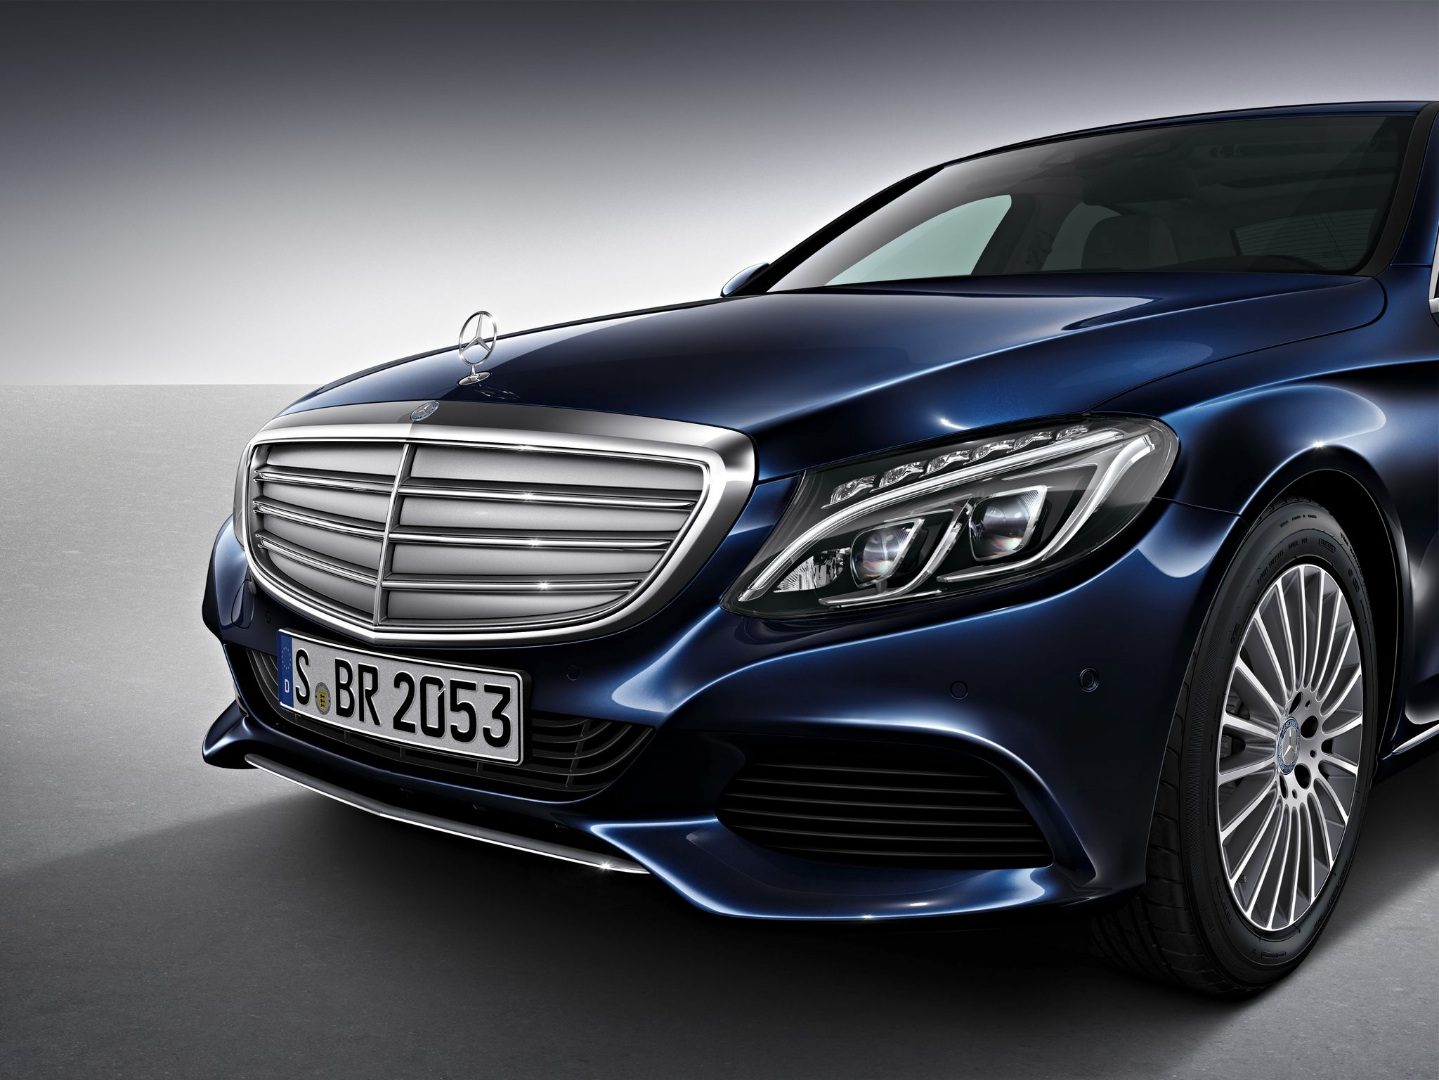 2015 mercedes benz c class w205 with airpanel looks like for Mercedes benz w205